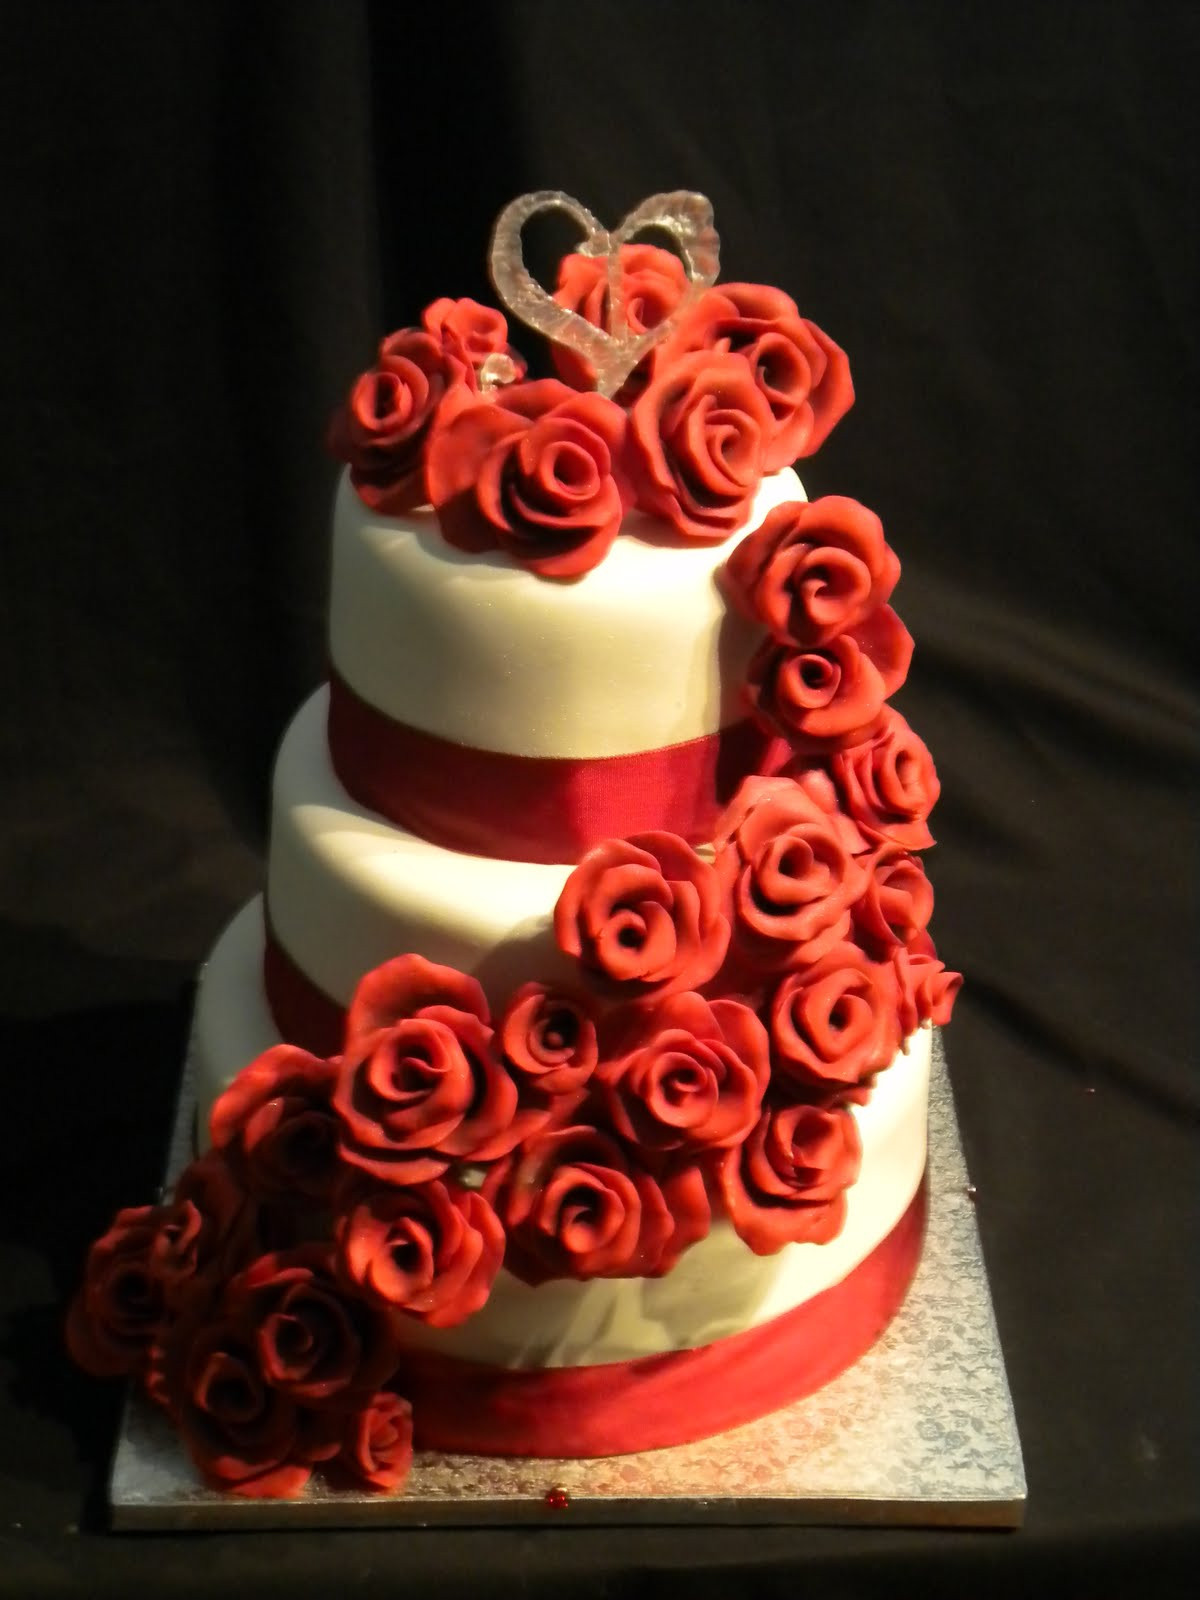 Red Rose Wedding Cakes  Cake Hope and Love Red Rose Wedding Cake